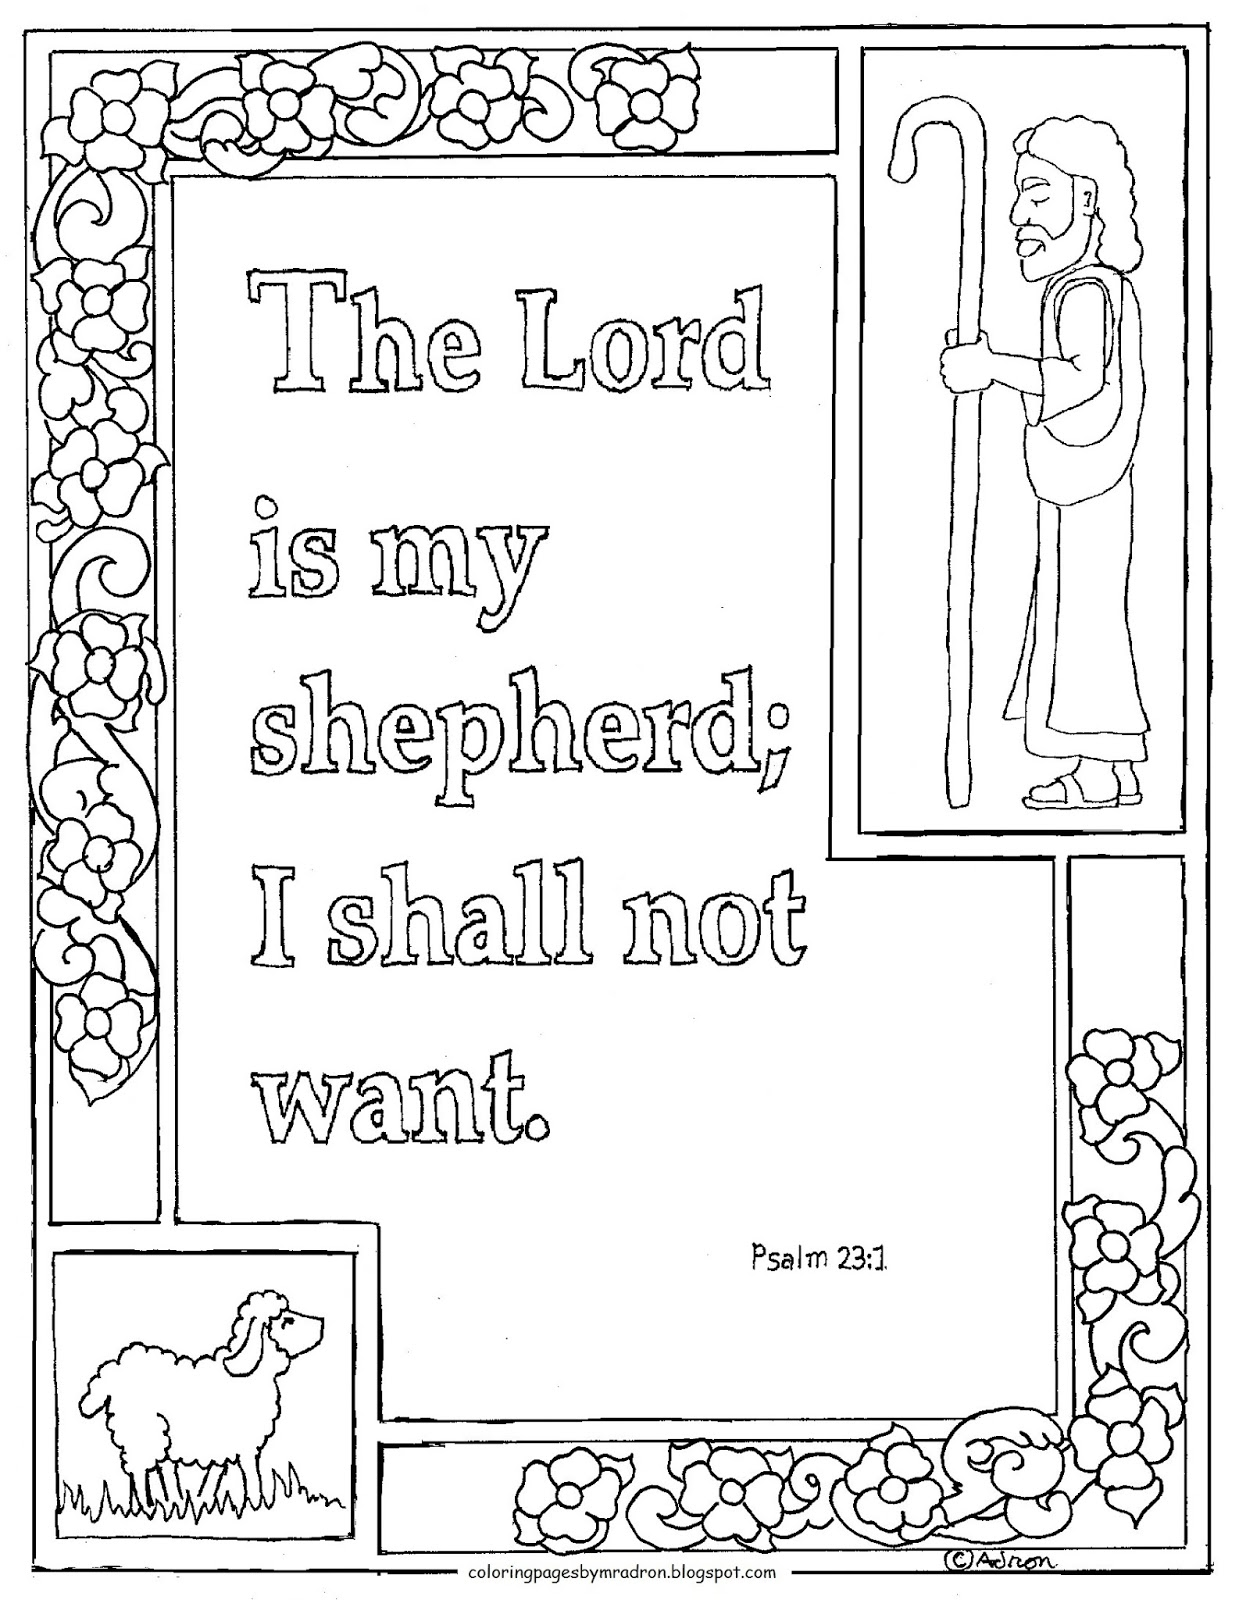 Coloring Pages For Kids By Mr Adron Printable Psalm 23 1